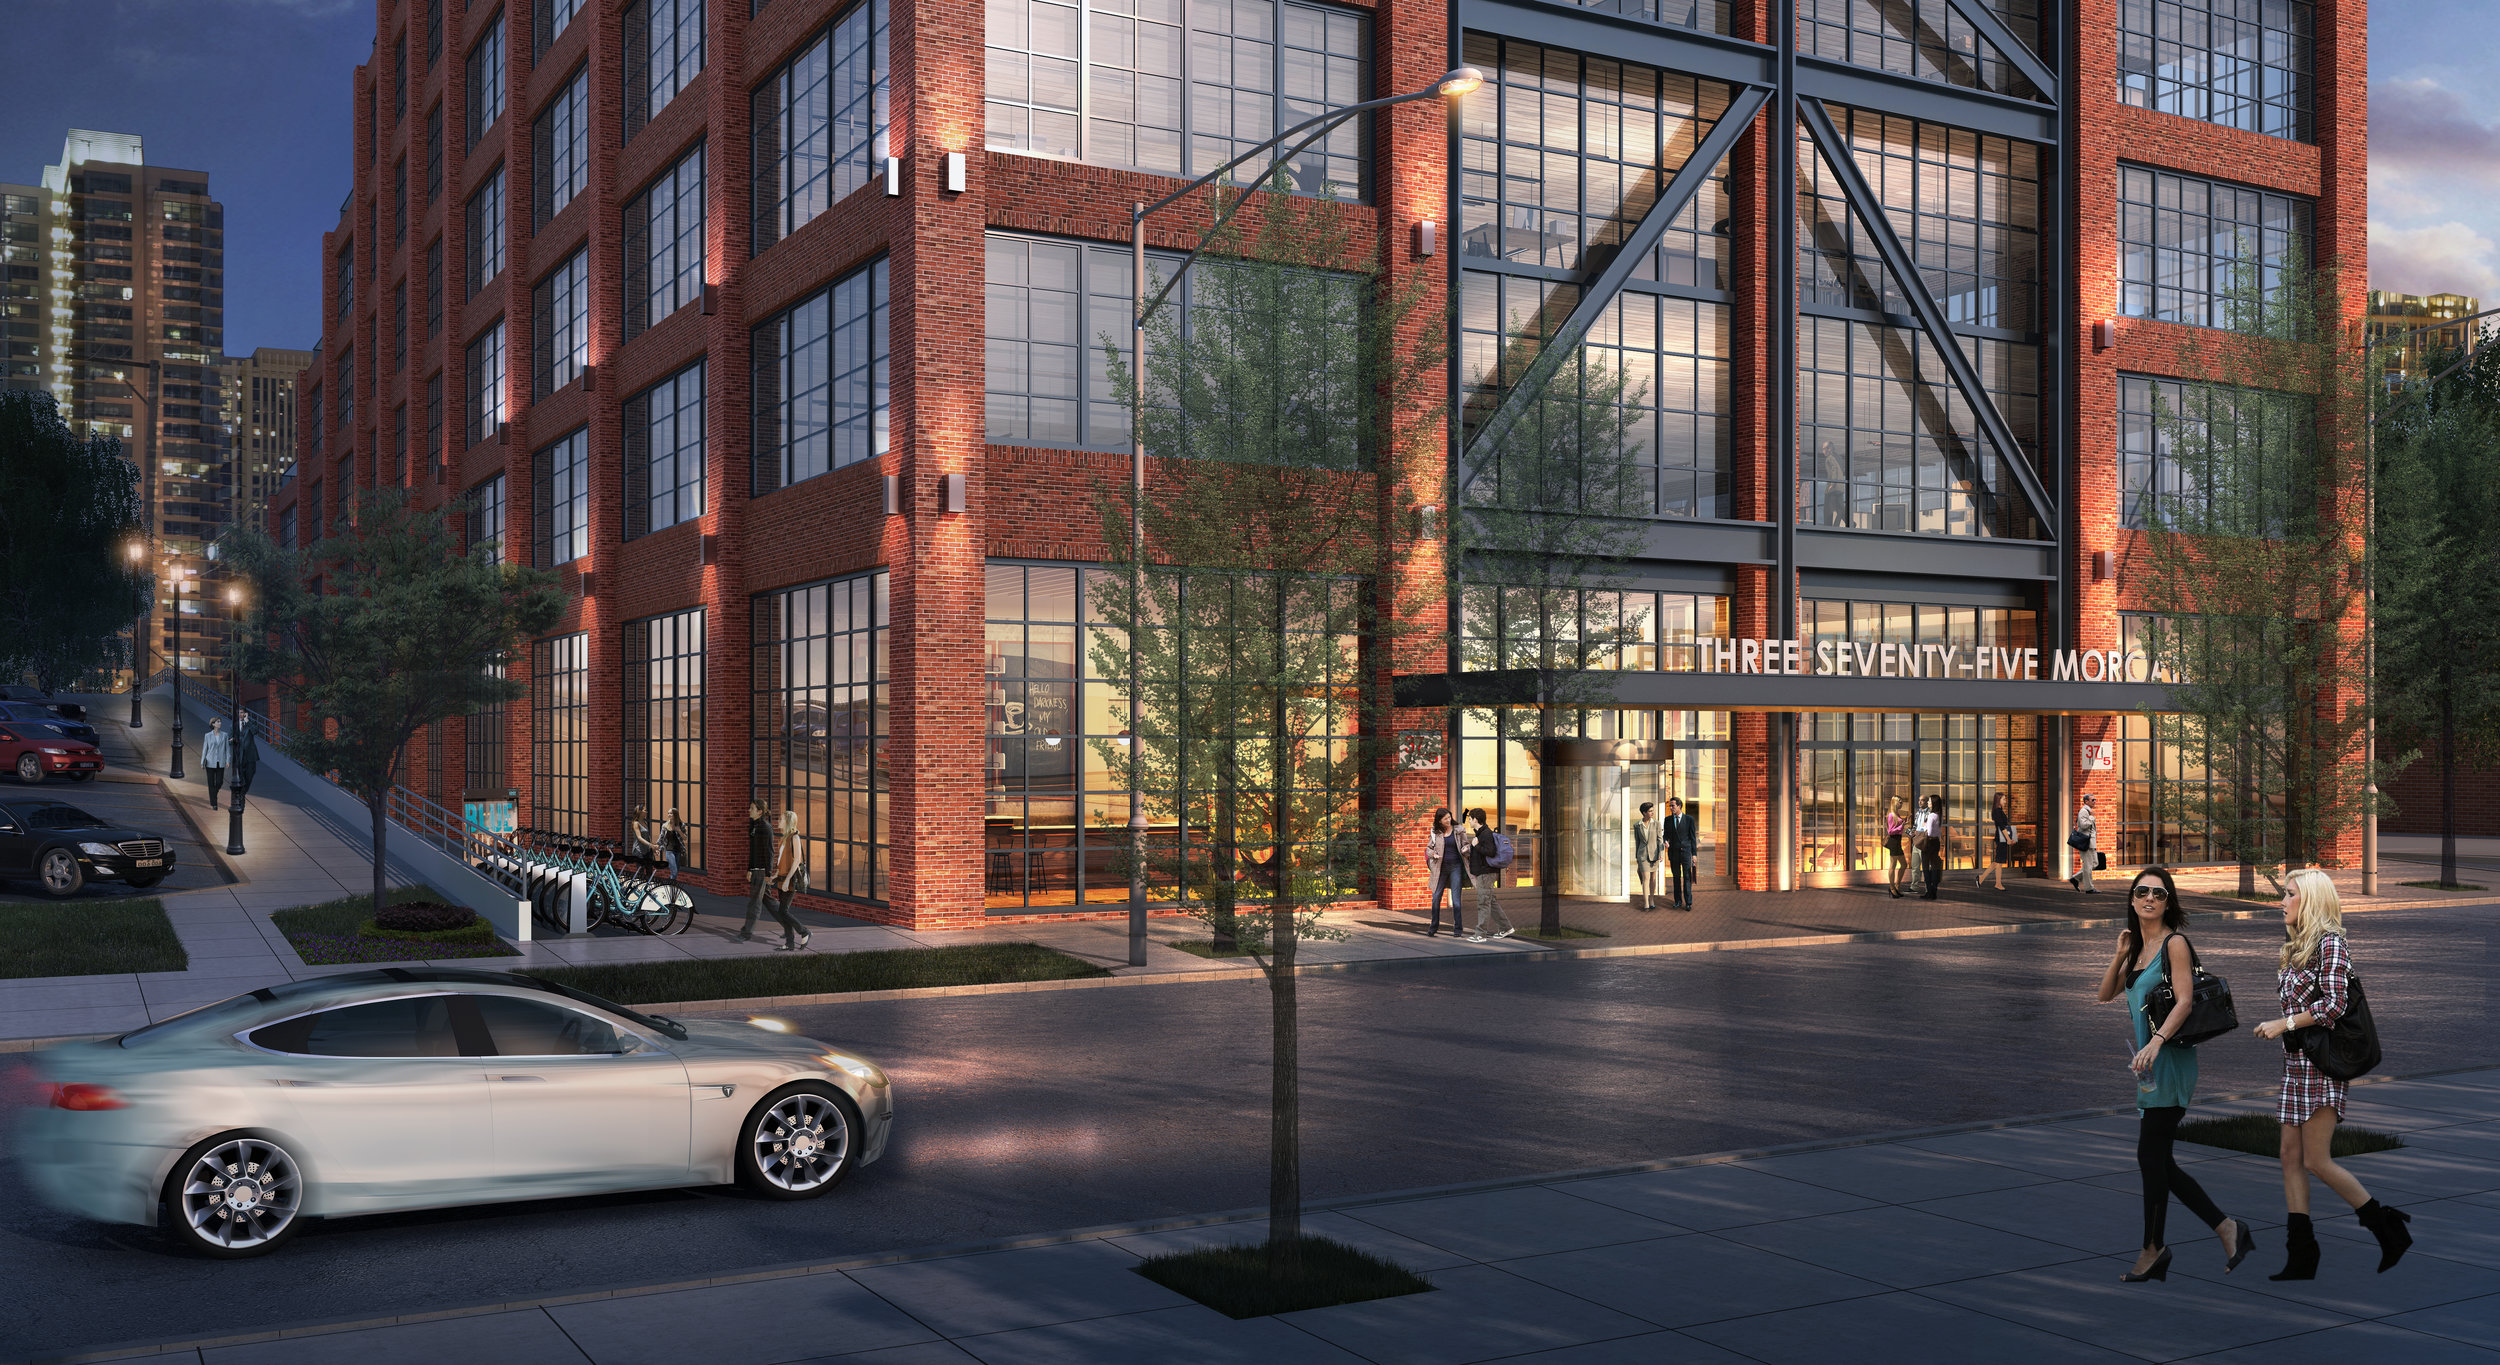 more office space coming to booming fulton market curbed chicago renderings of the project reveal what appears to be a warehouse inspired aesthetic a style which has dominated new development in the greater west loop area